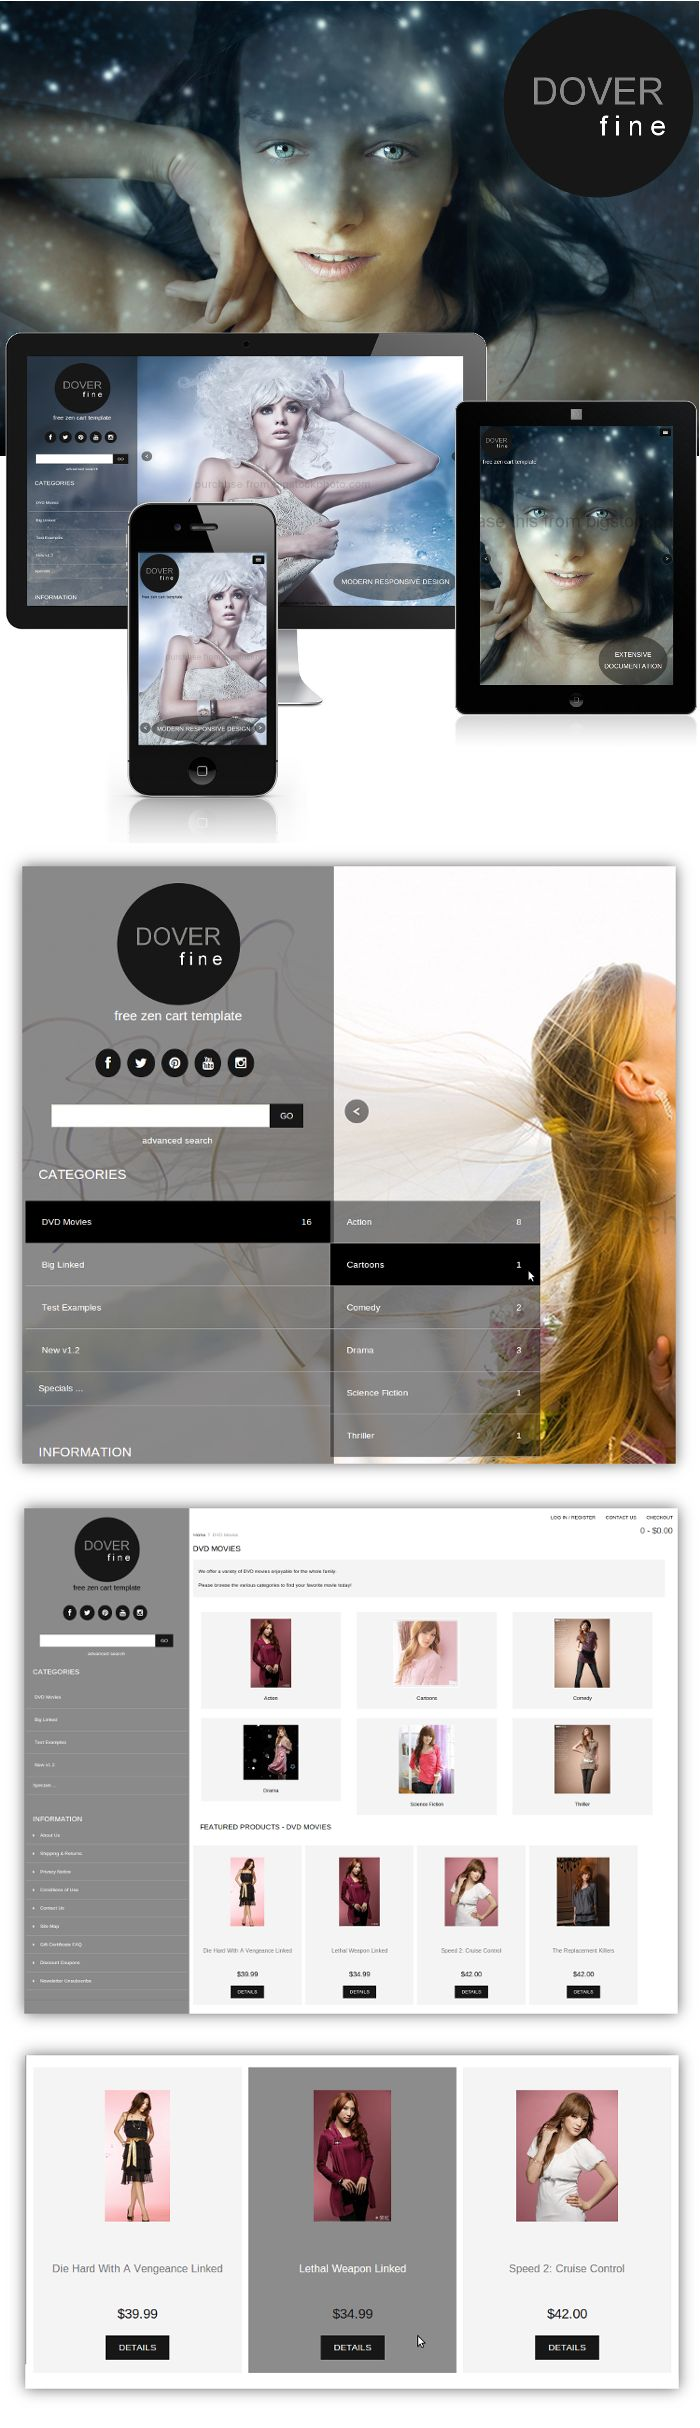 Dover Fine Free Zen Cart Template by Picaflor Azul, Responsive Ecommerce  Web Design.